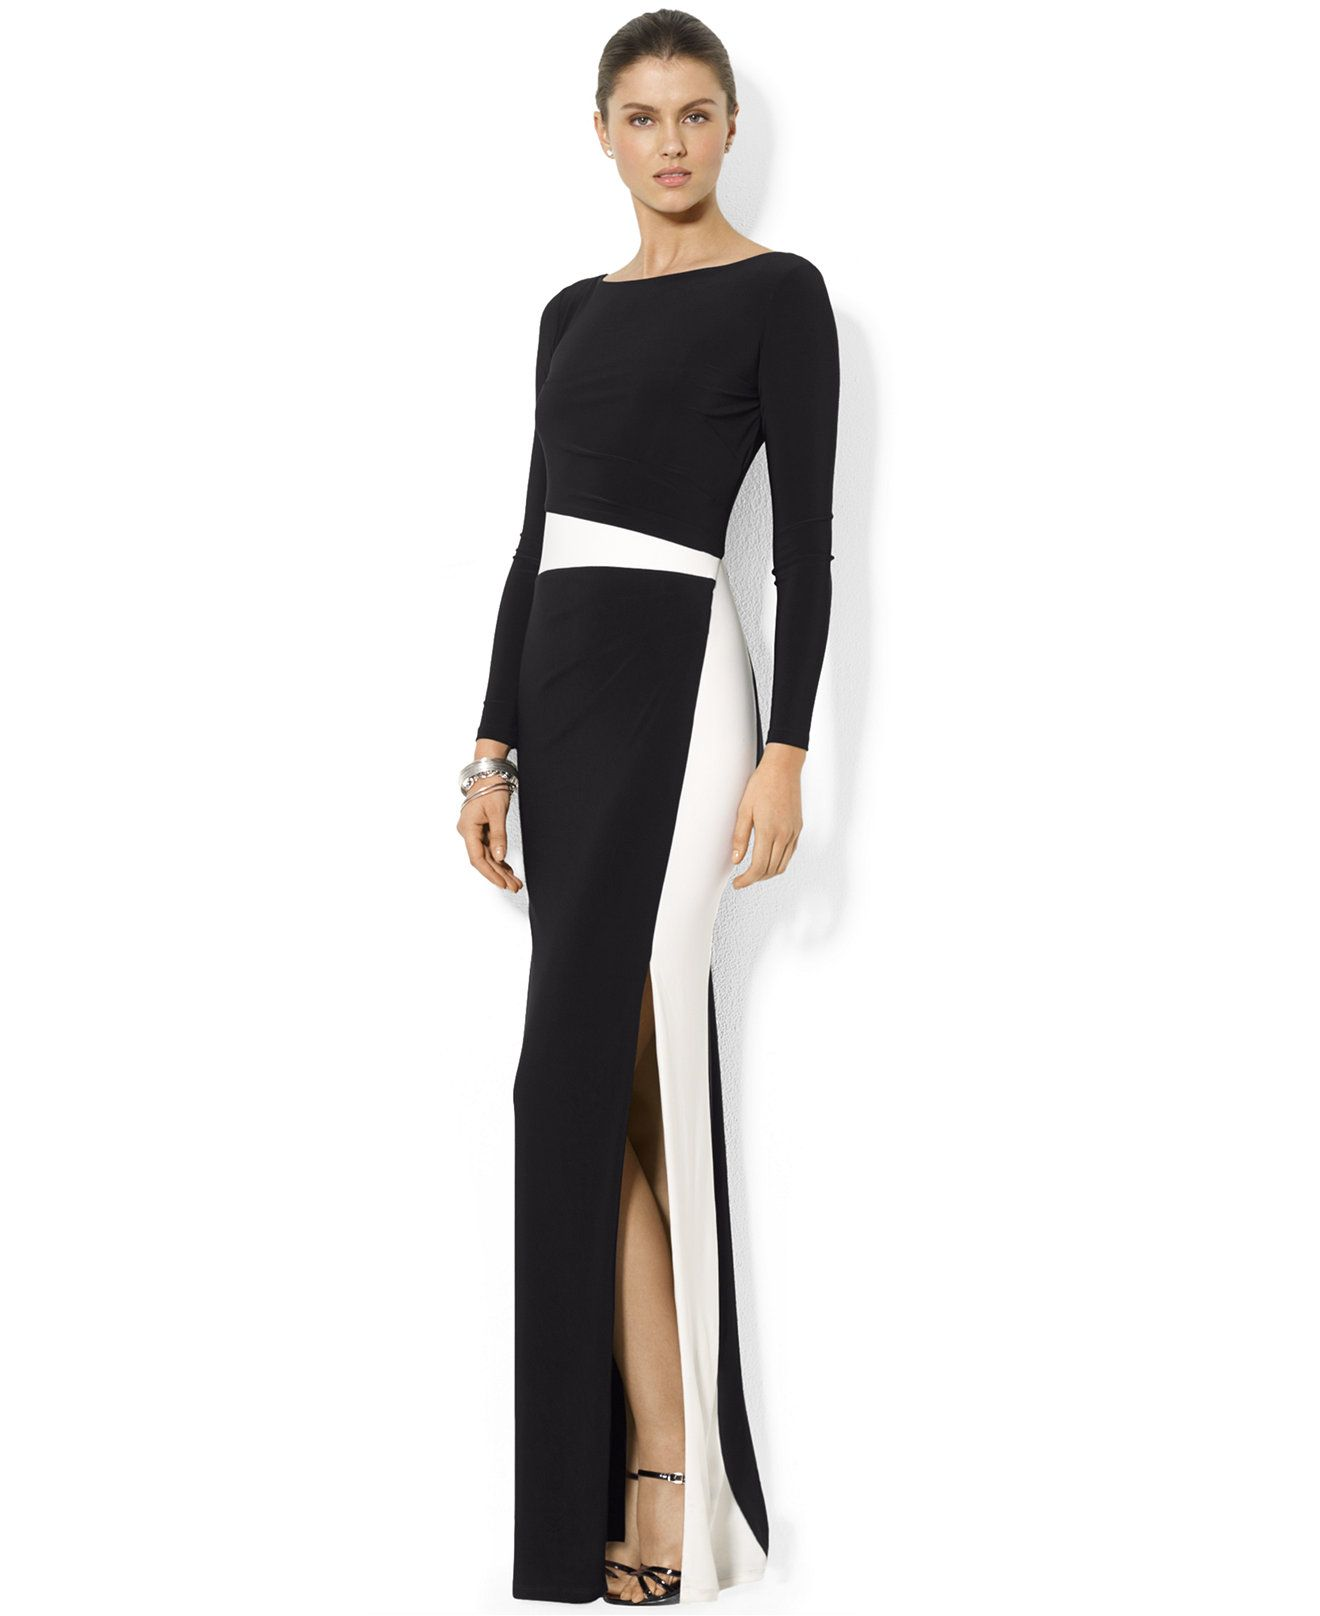 Lauren Ralph Lauren Long-Sleeve Colorblocked Gown - Dresses - Women ...